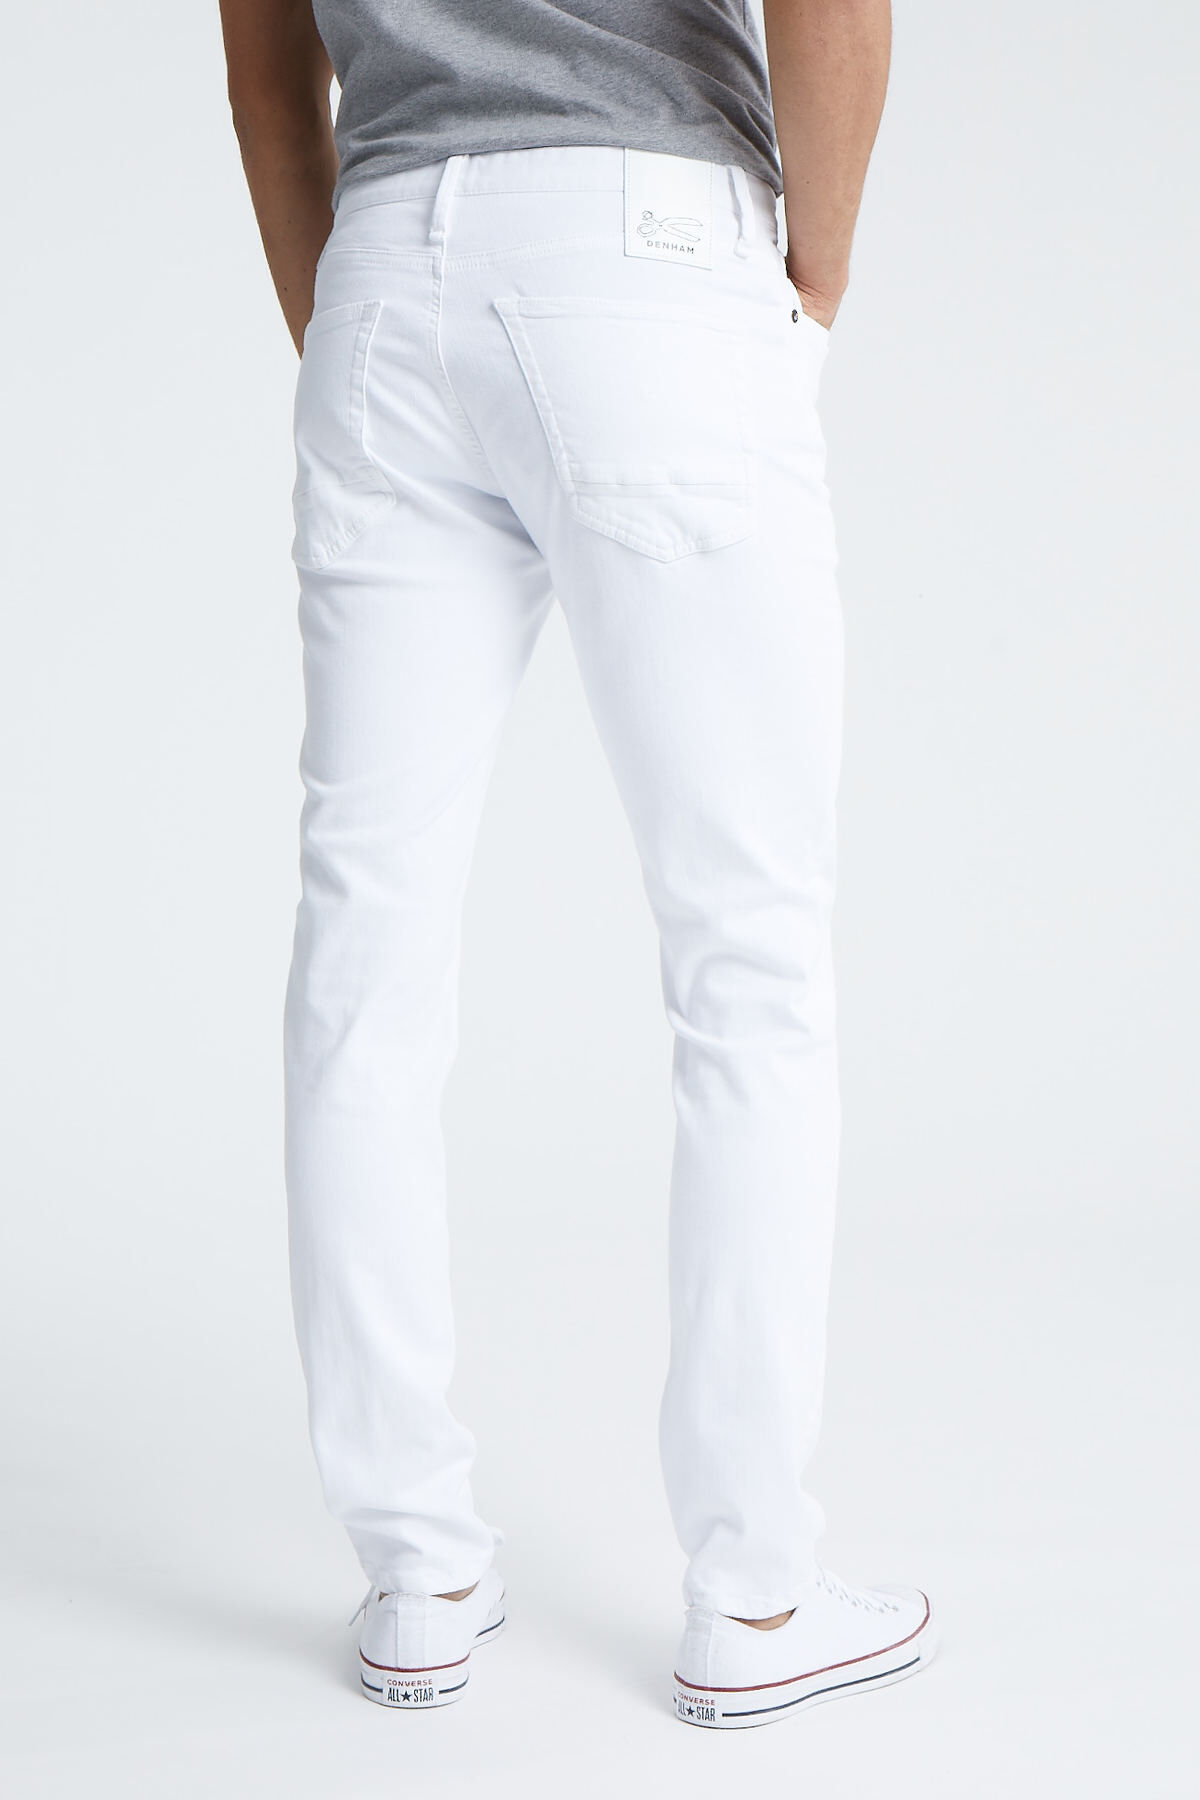 RAZOR White Cast Denim - Slim Fit